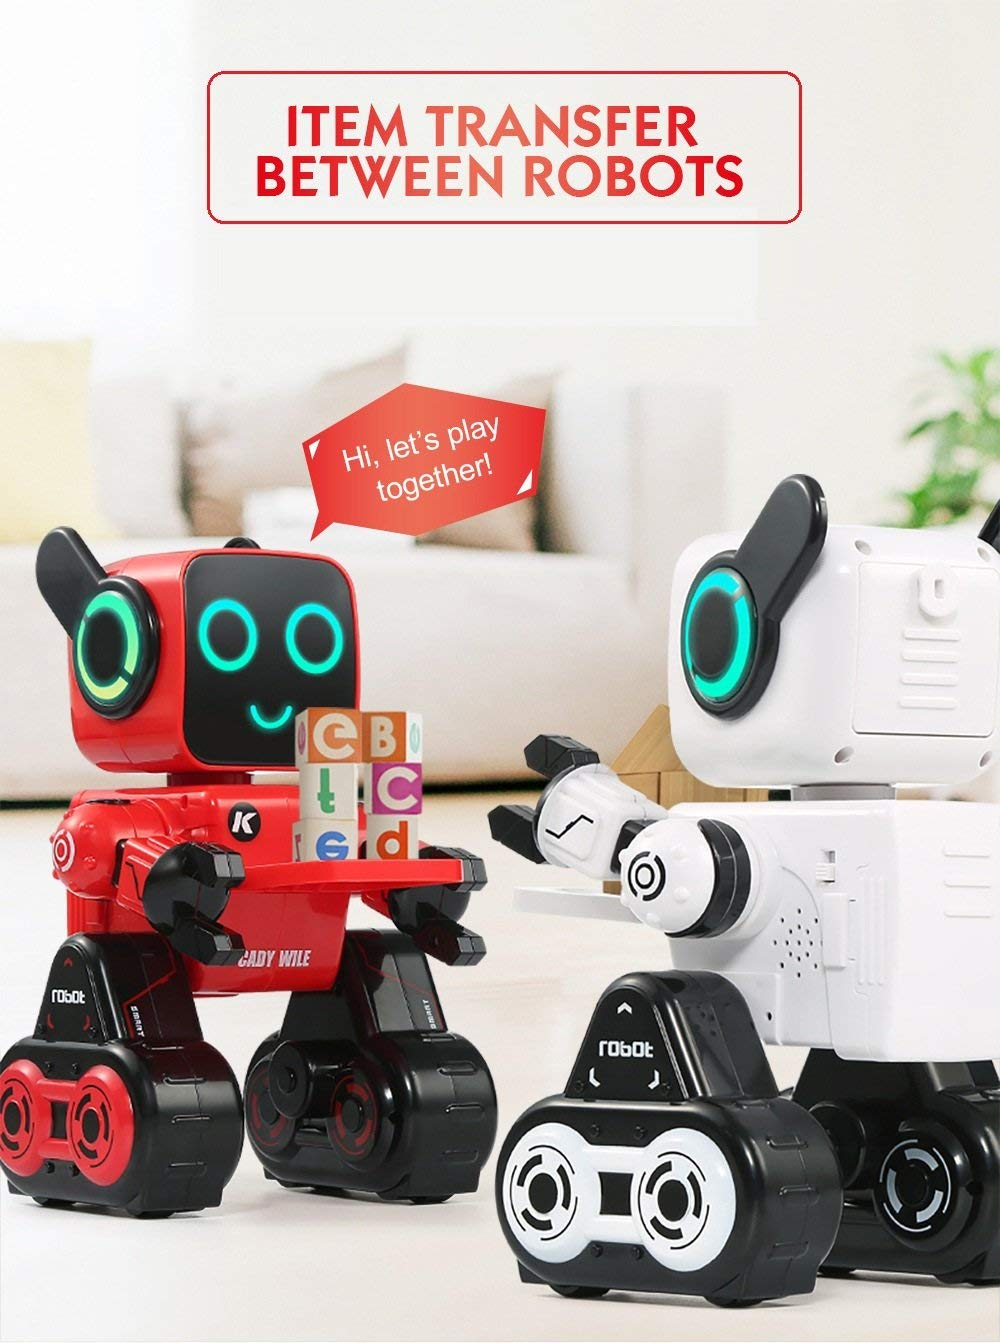 Hi-Tech Wireless Interactive Robot RC Robot Toy for Boys, Girls, Kids, Children (Red) by HI-TECH OPTOELETRONICS CO., LTD. (Image #6)